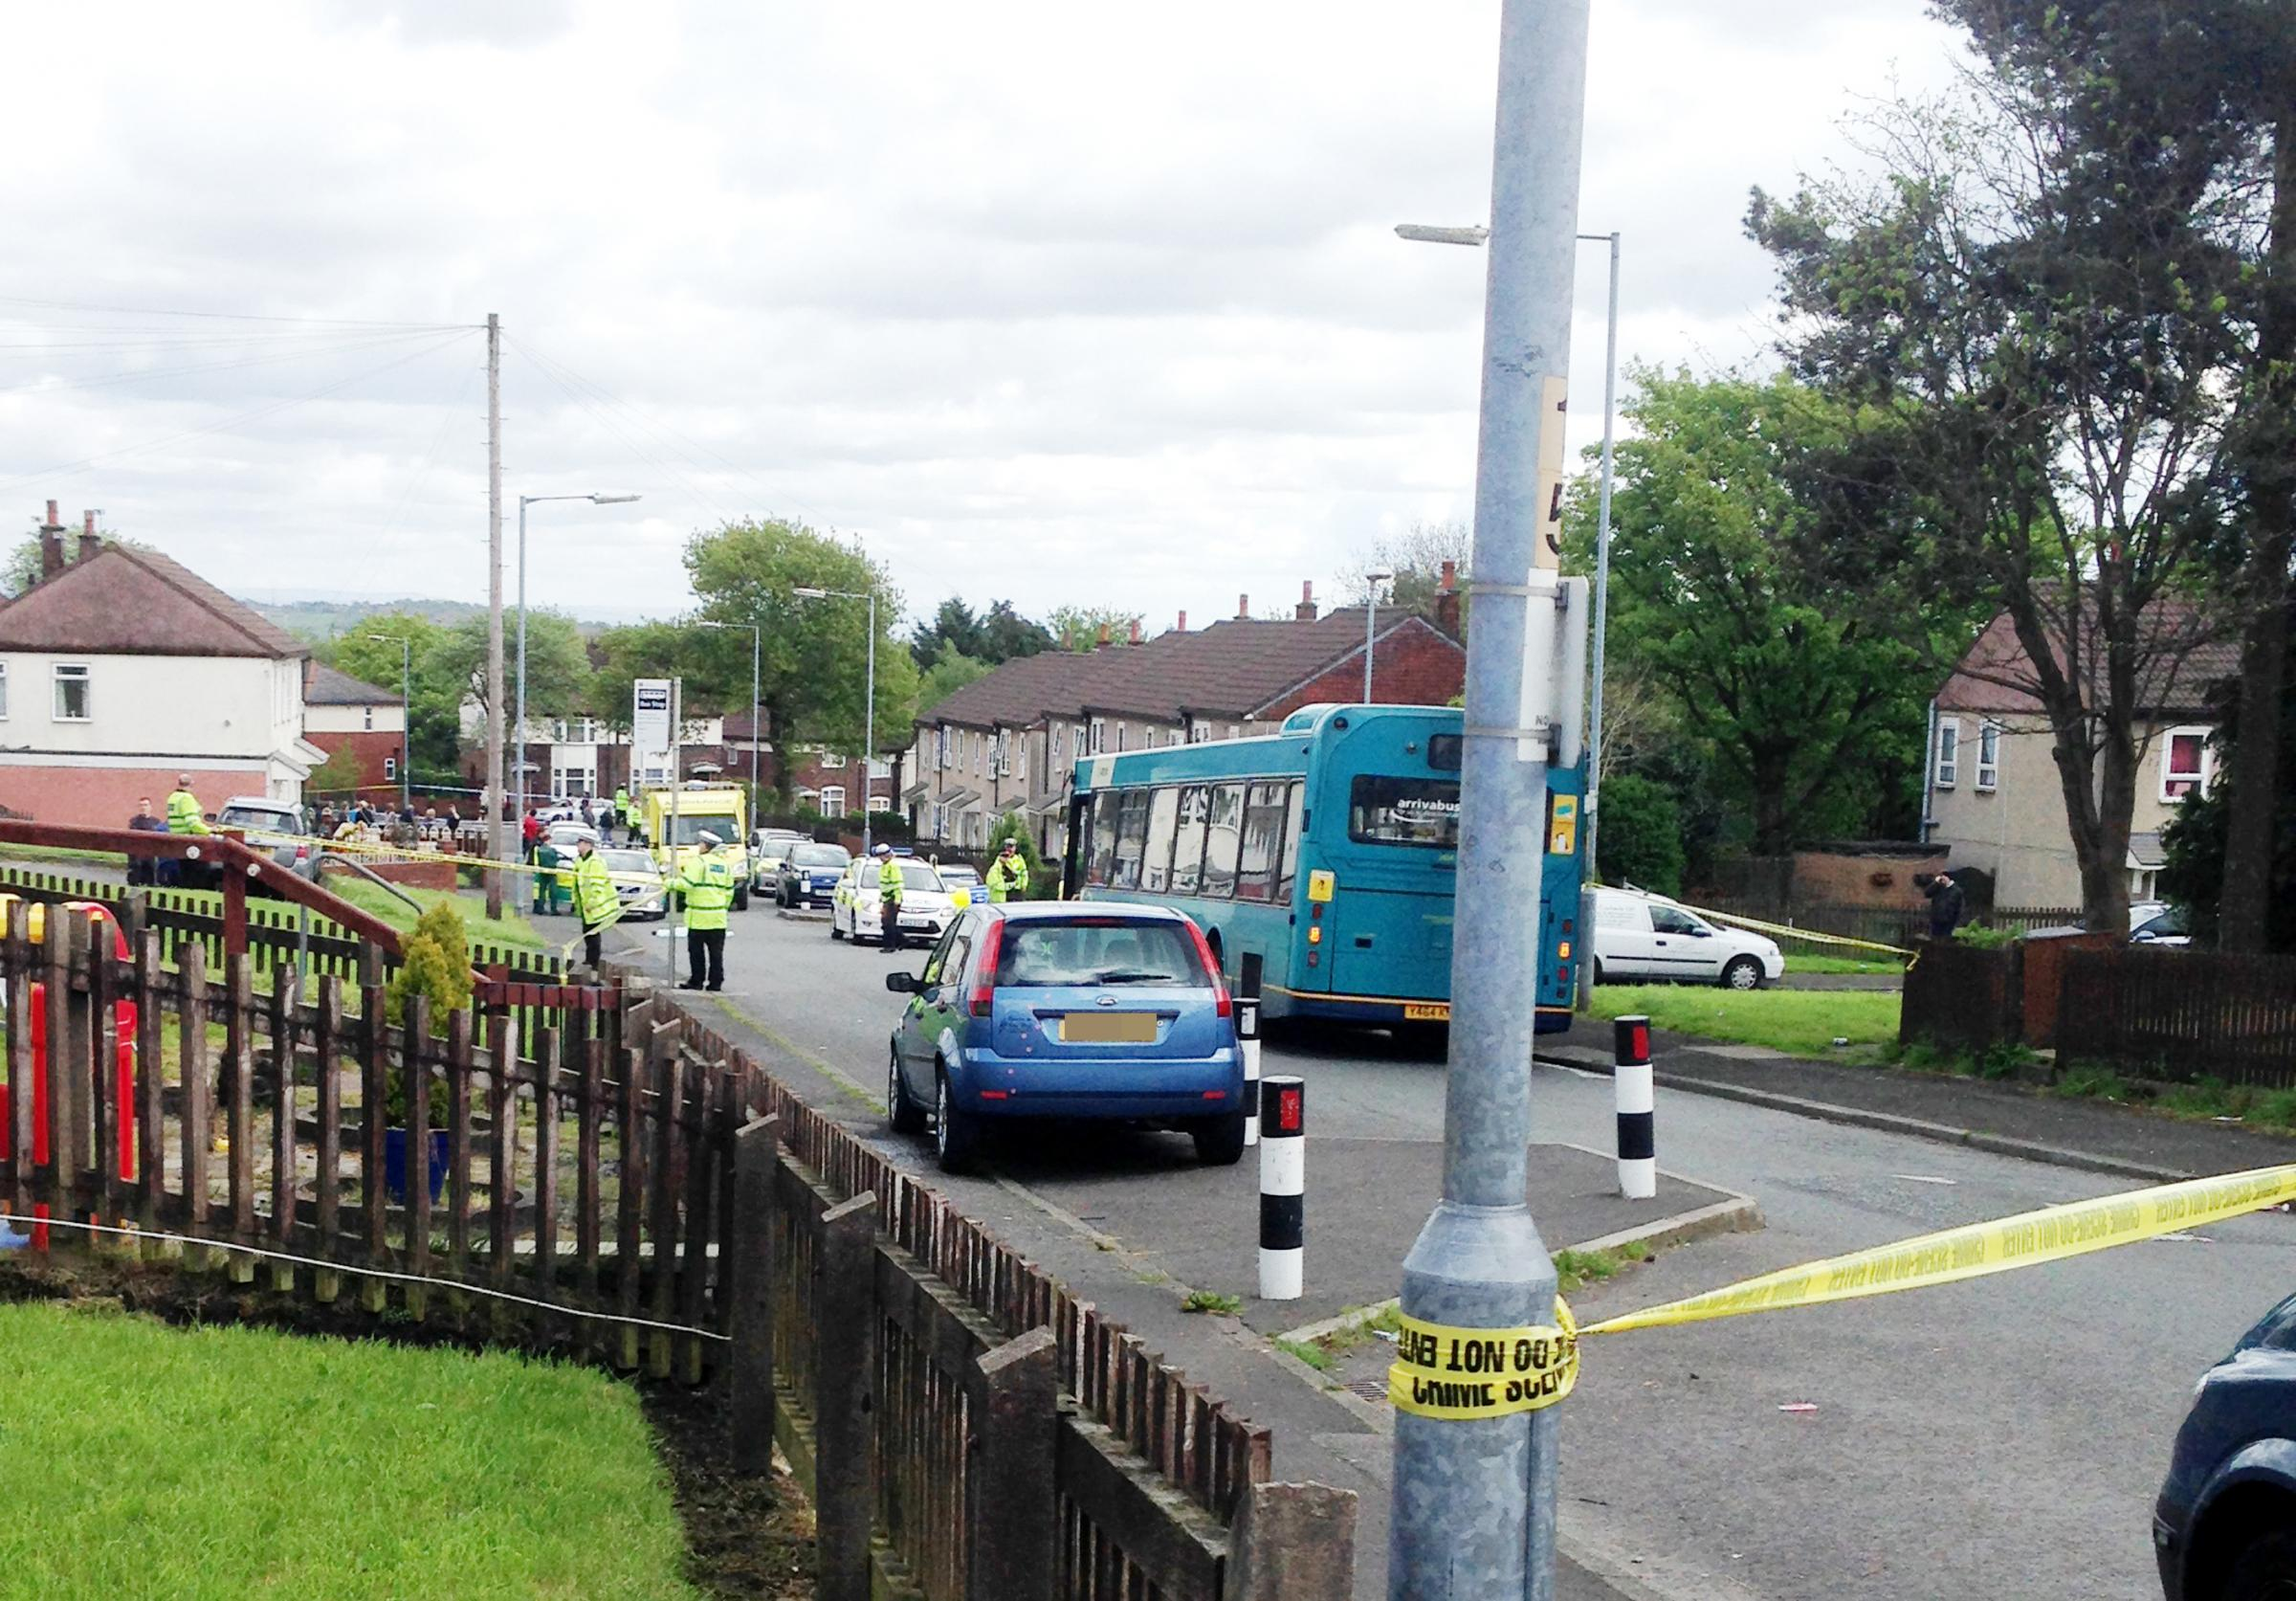 Delroy Finney named as man killed in Astley Bridge bus accident